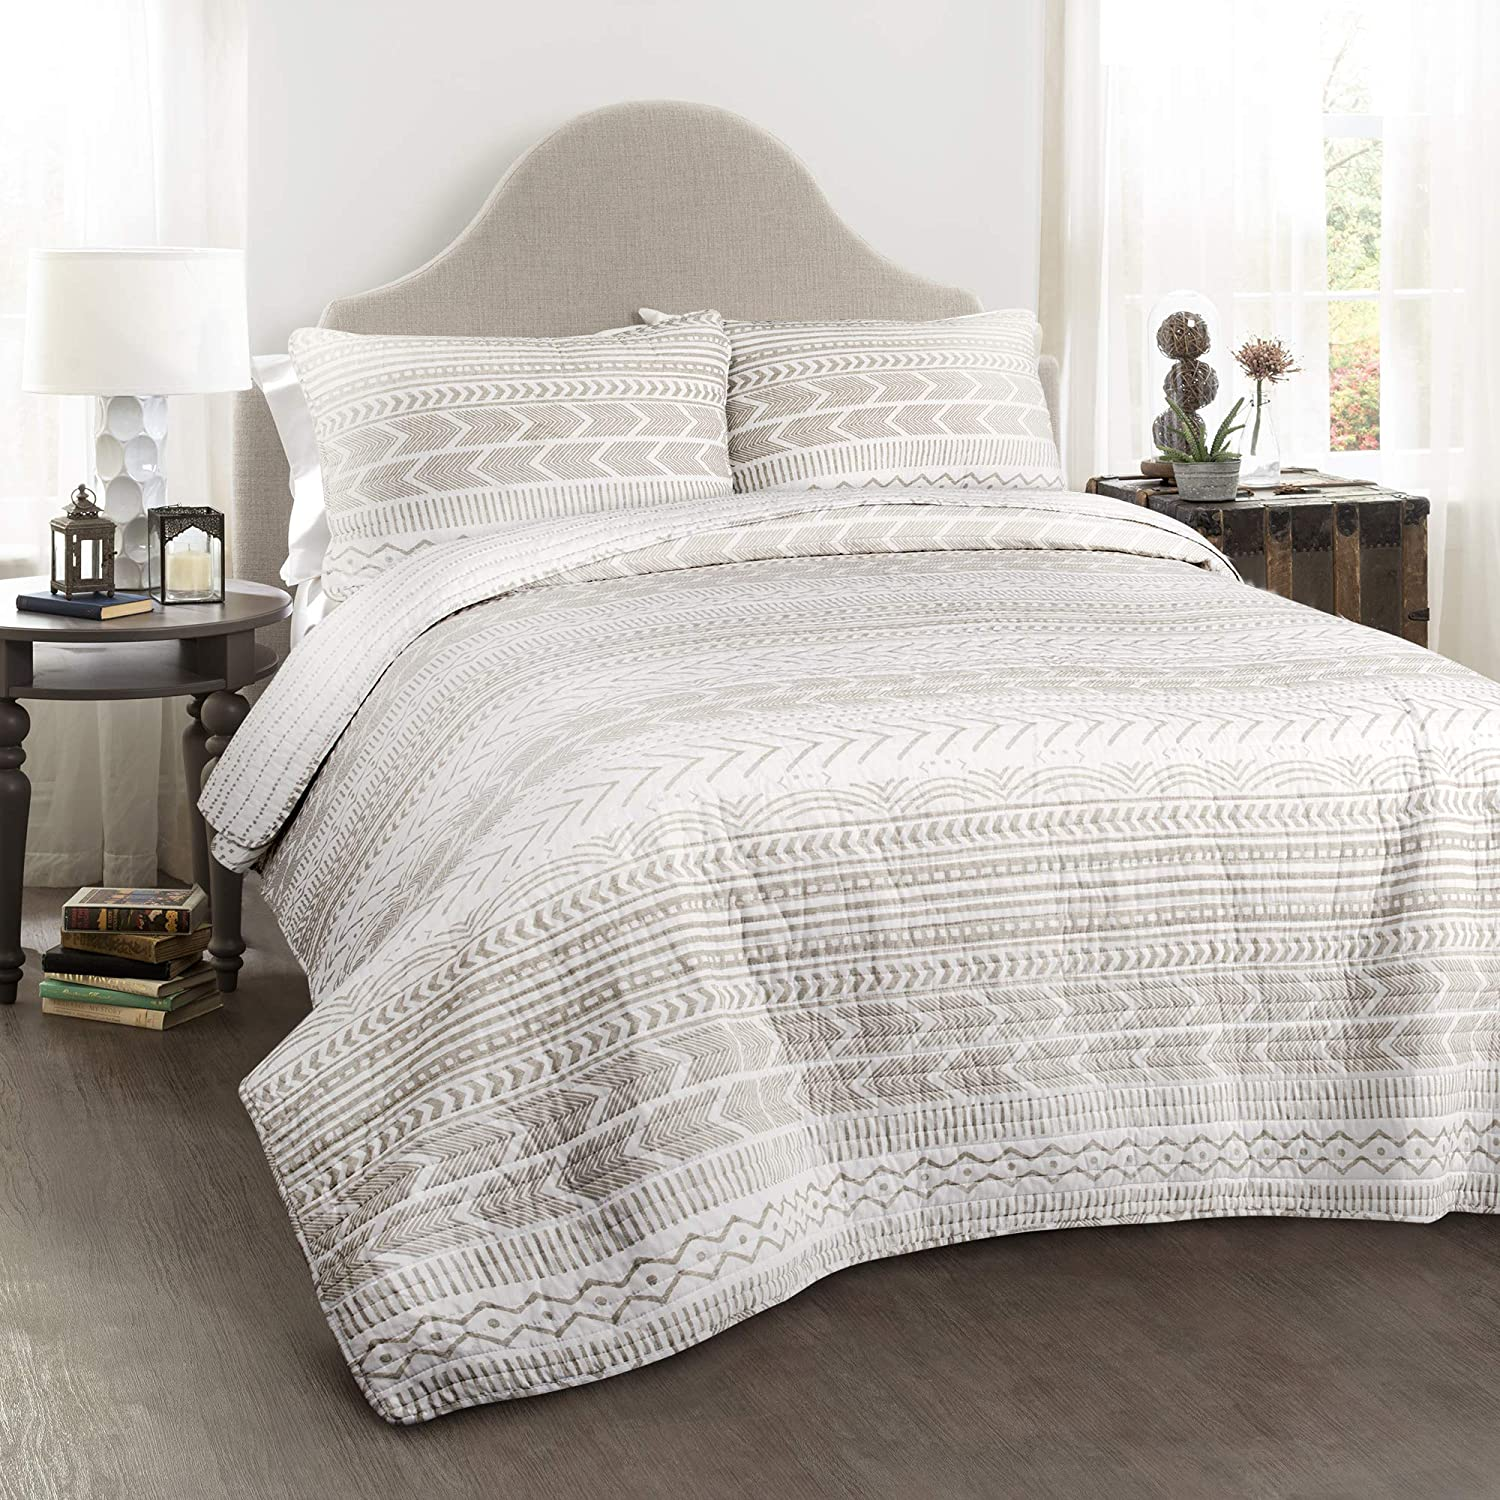 Lush Decor Hygge Geo 3 Piece Set Limited price sale Taupe King Quilt online shop White